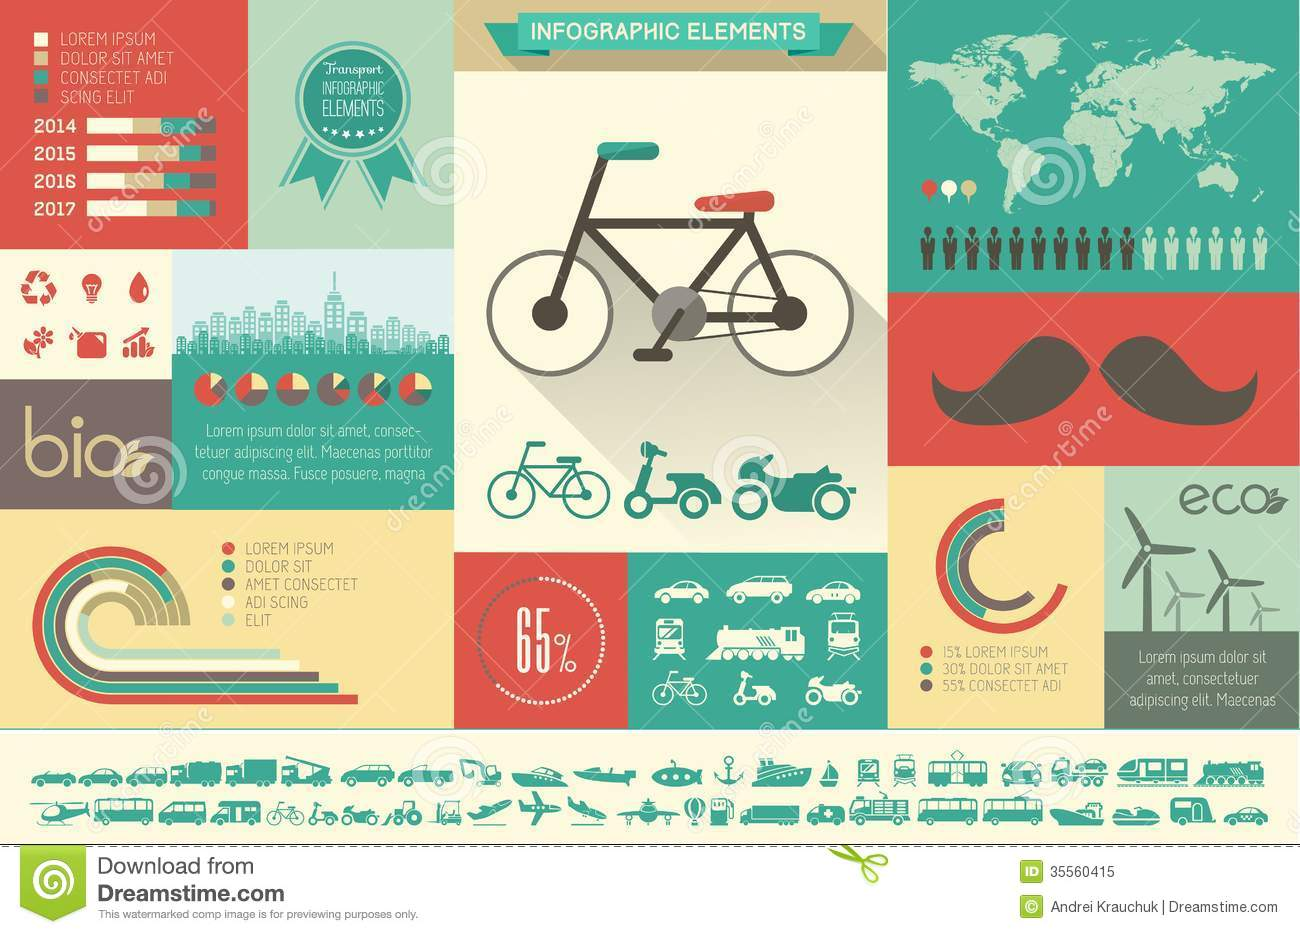 motorcycle diagram with label with Royalty Free Stock Photo Transportation Infographic Template Flat Elements Plus Icon Set Image35560415 on Parts Of A Tire Diagram furthermore Nervous System Diagram To Label also Tires Buzzle further Glove Size Chart as well Rickyriffle blogspot.